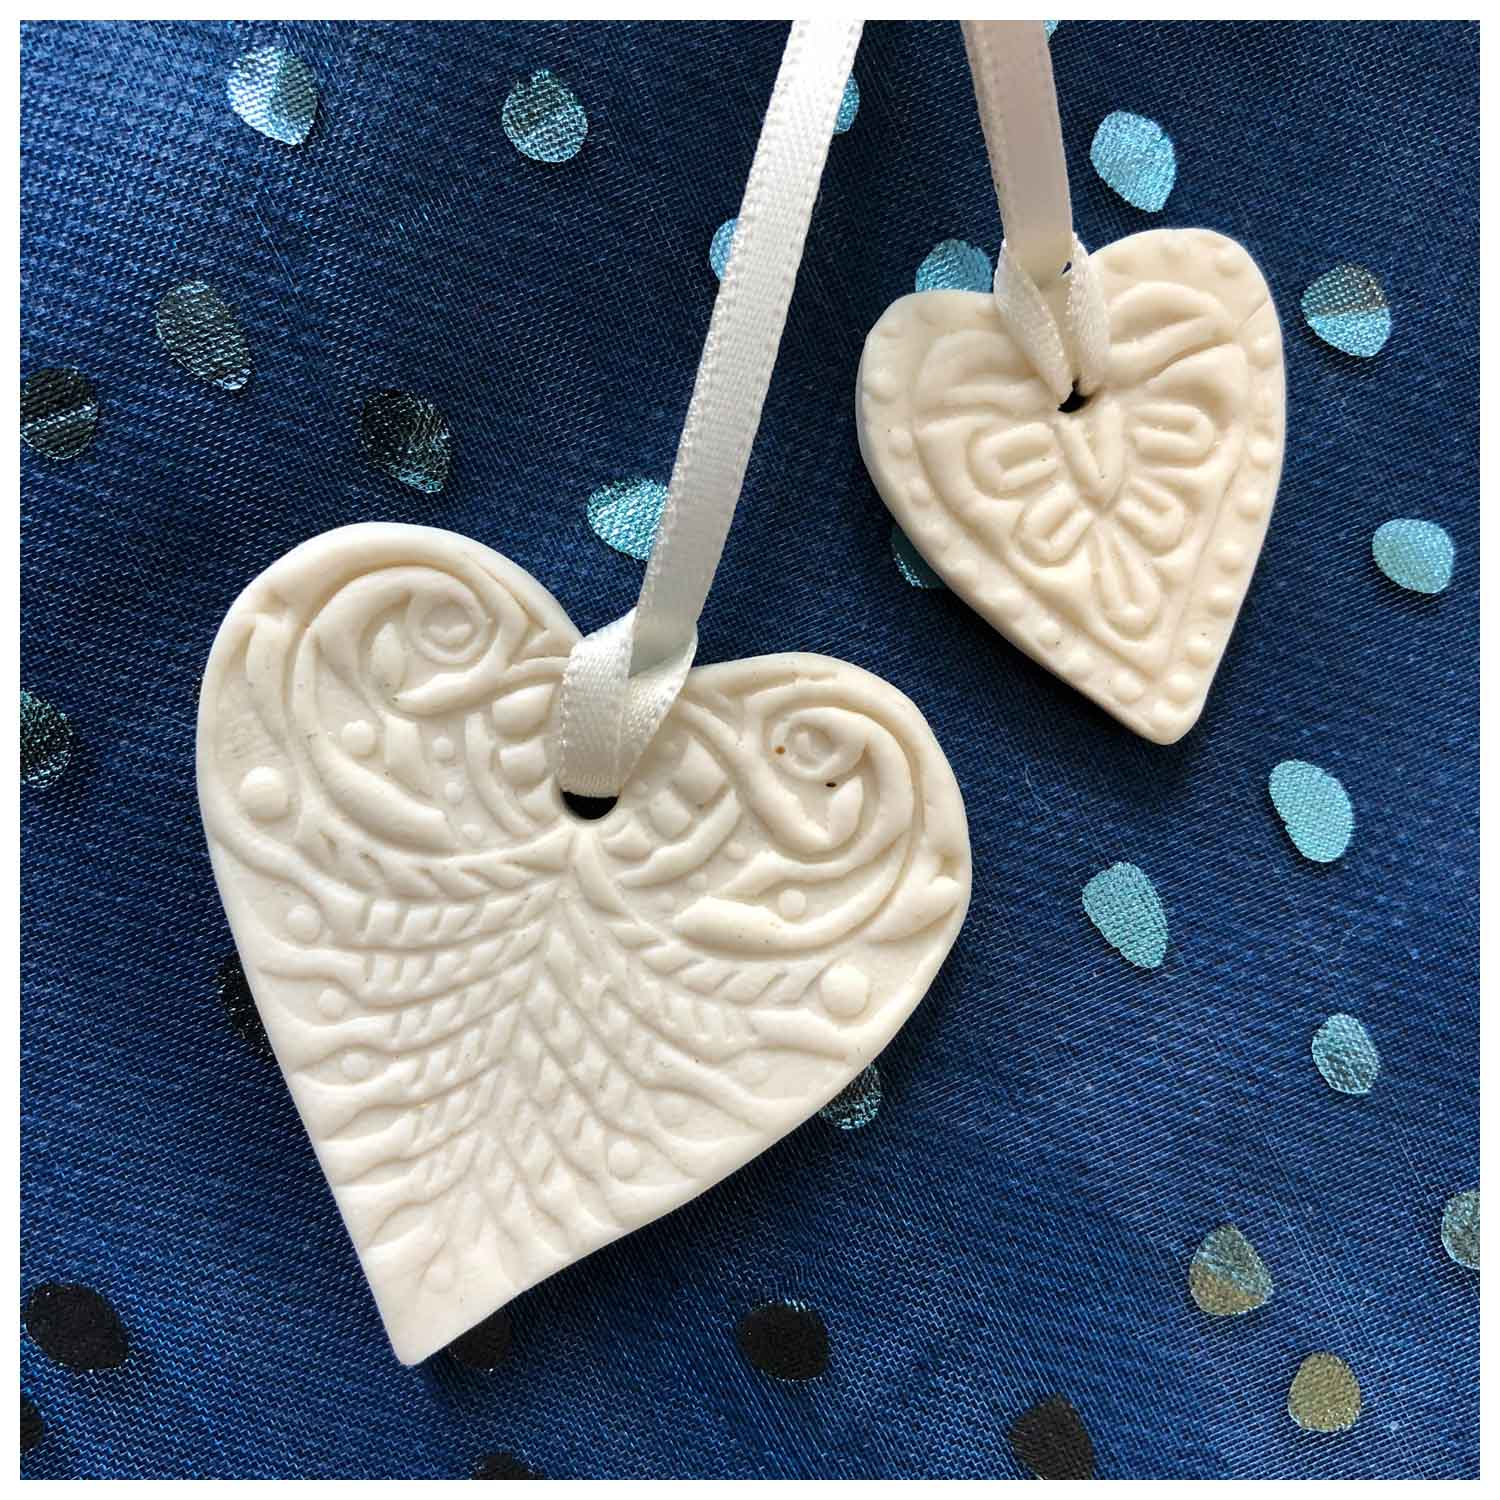 Helena Thomas Pair Of Hearts Porcelain 50mm & 30mm £7.50